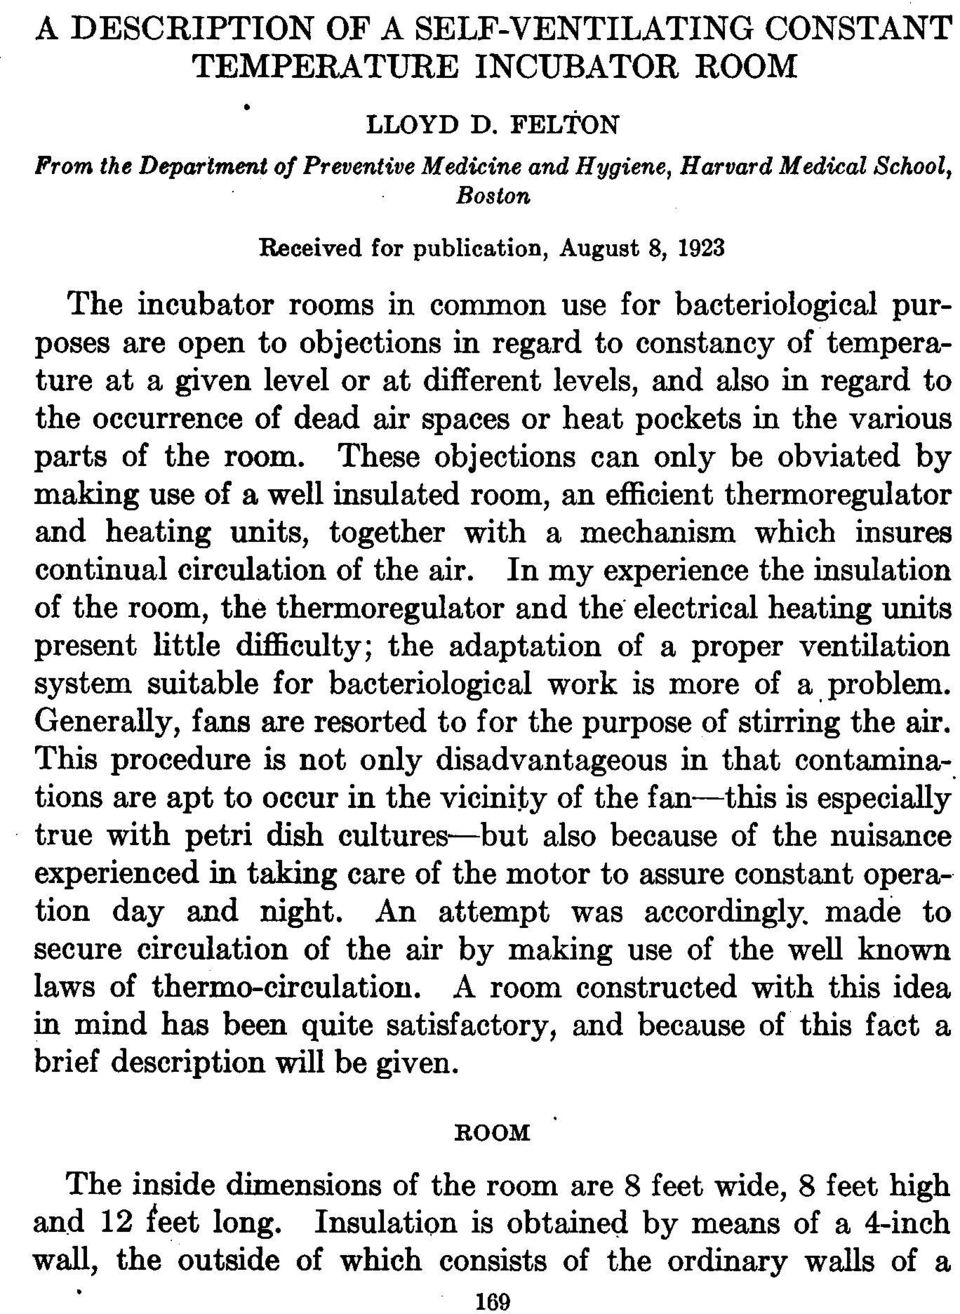 are open to objections in regard to constancy of temperature at a given level or at different levels, and also in regard to the occurrence of dead air spaces or heat pockets in the various parts of